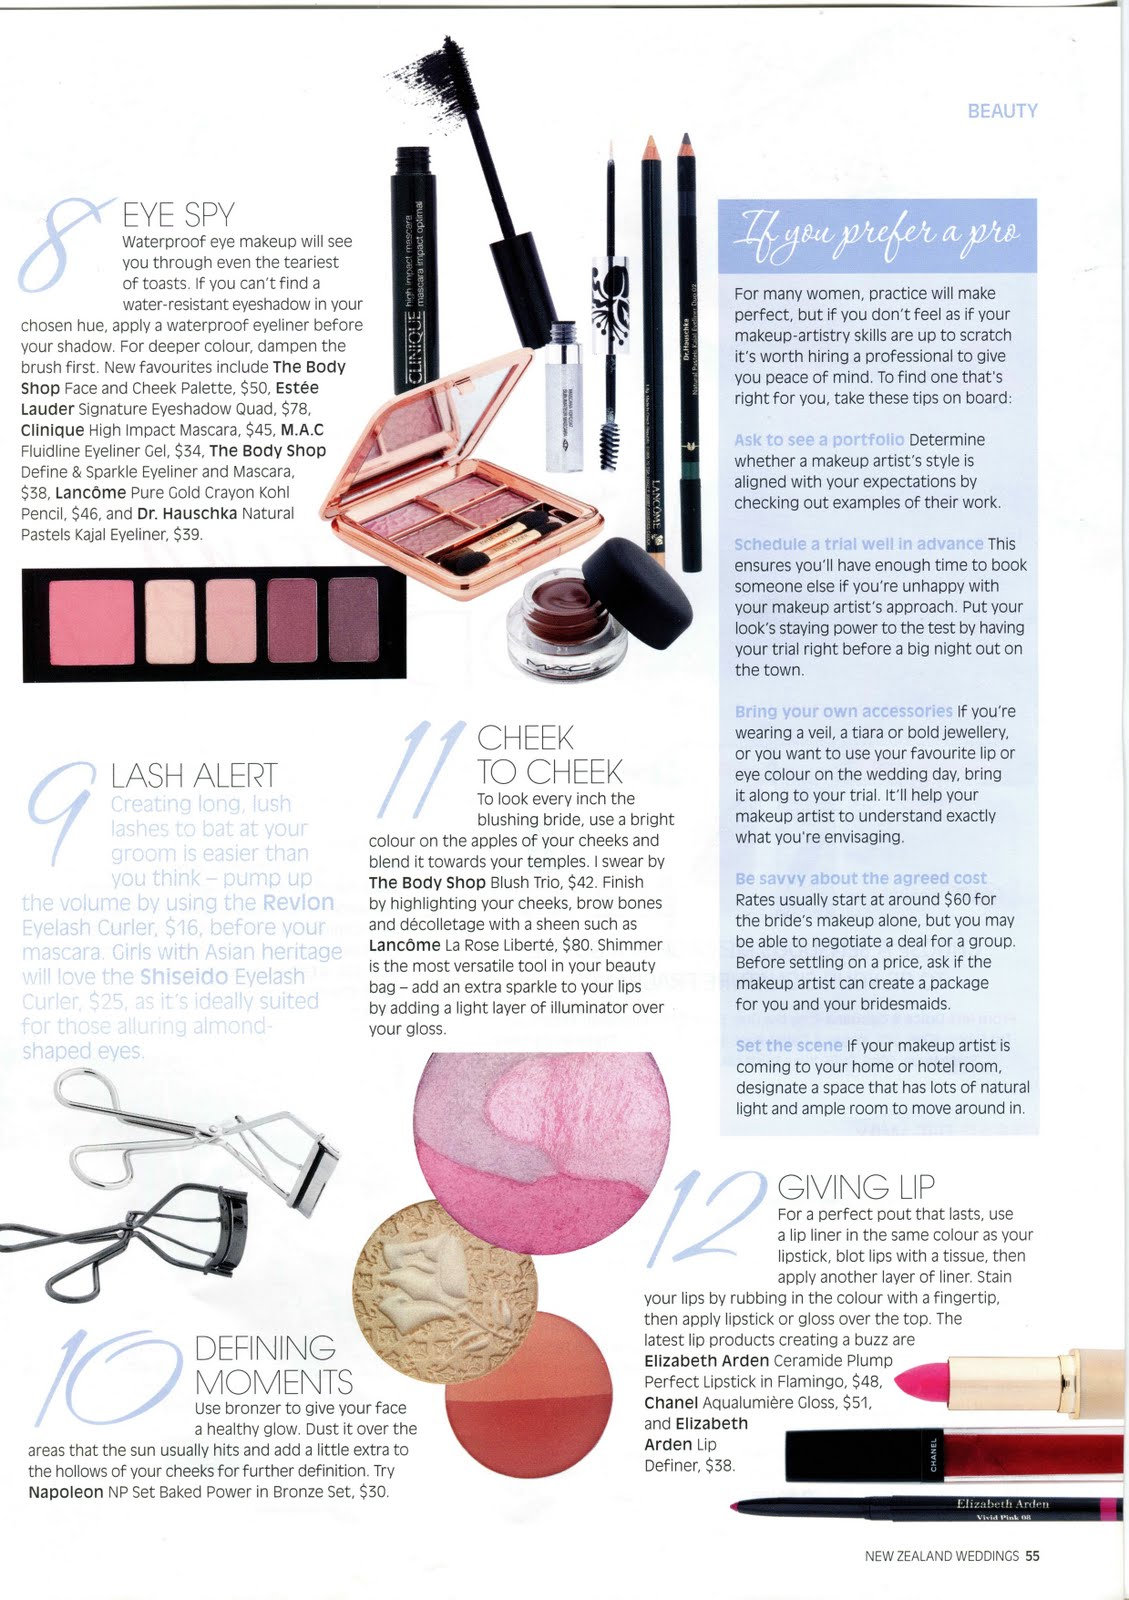 Articles for makeup